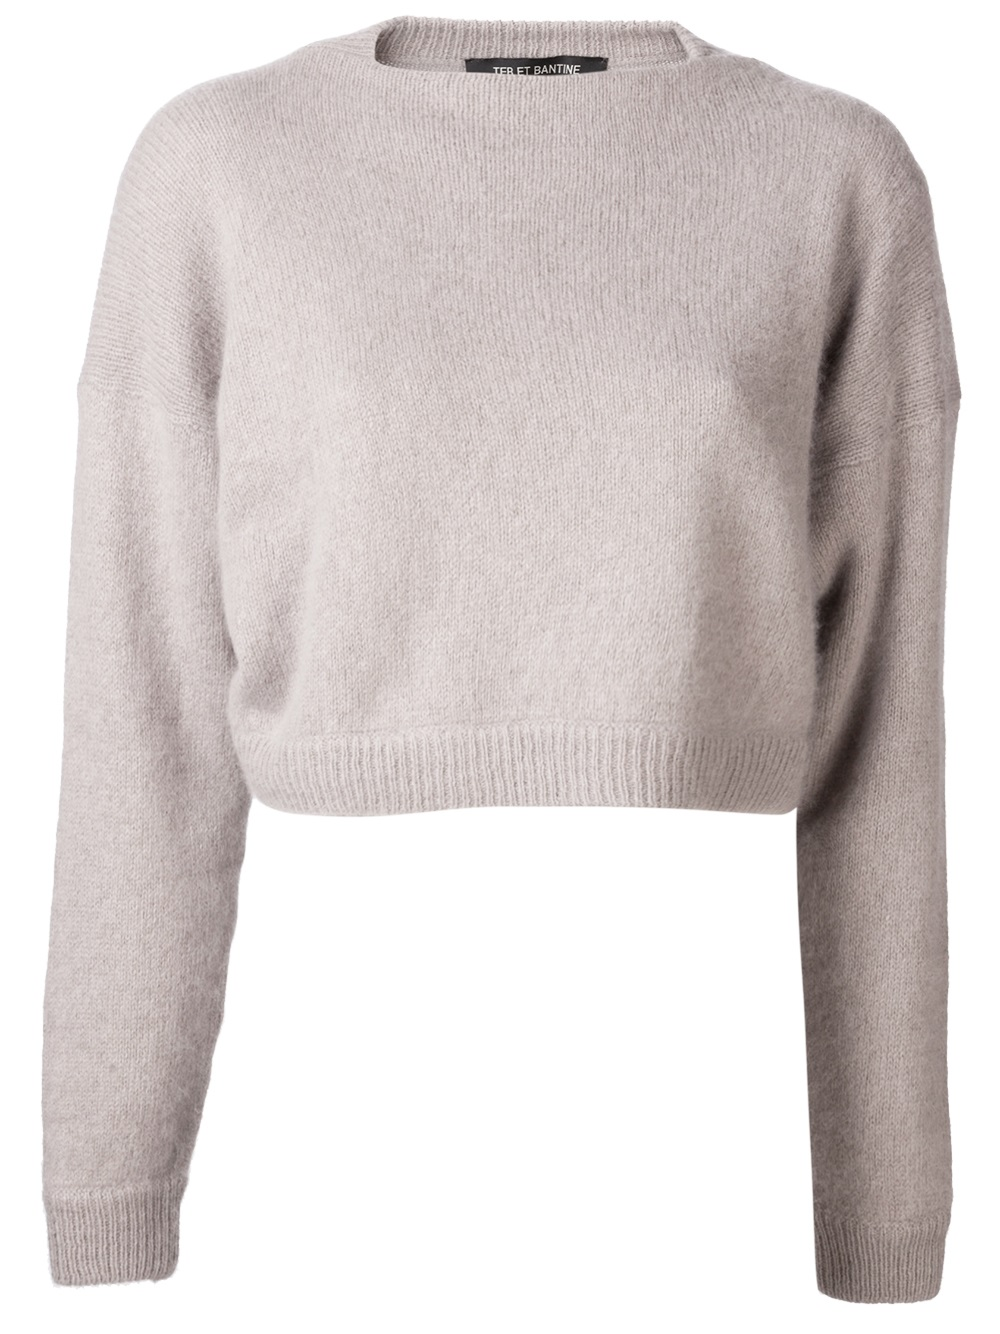 Ter et bantine Cropped Sweater in Natural | Lyst